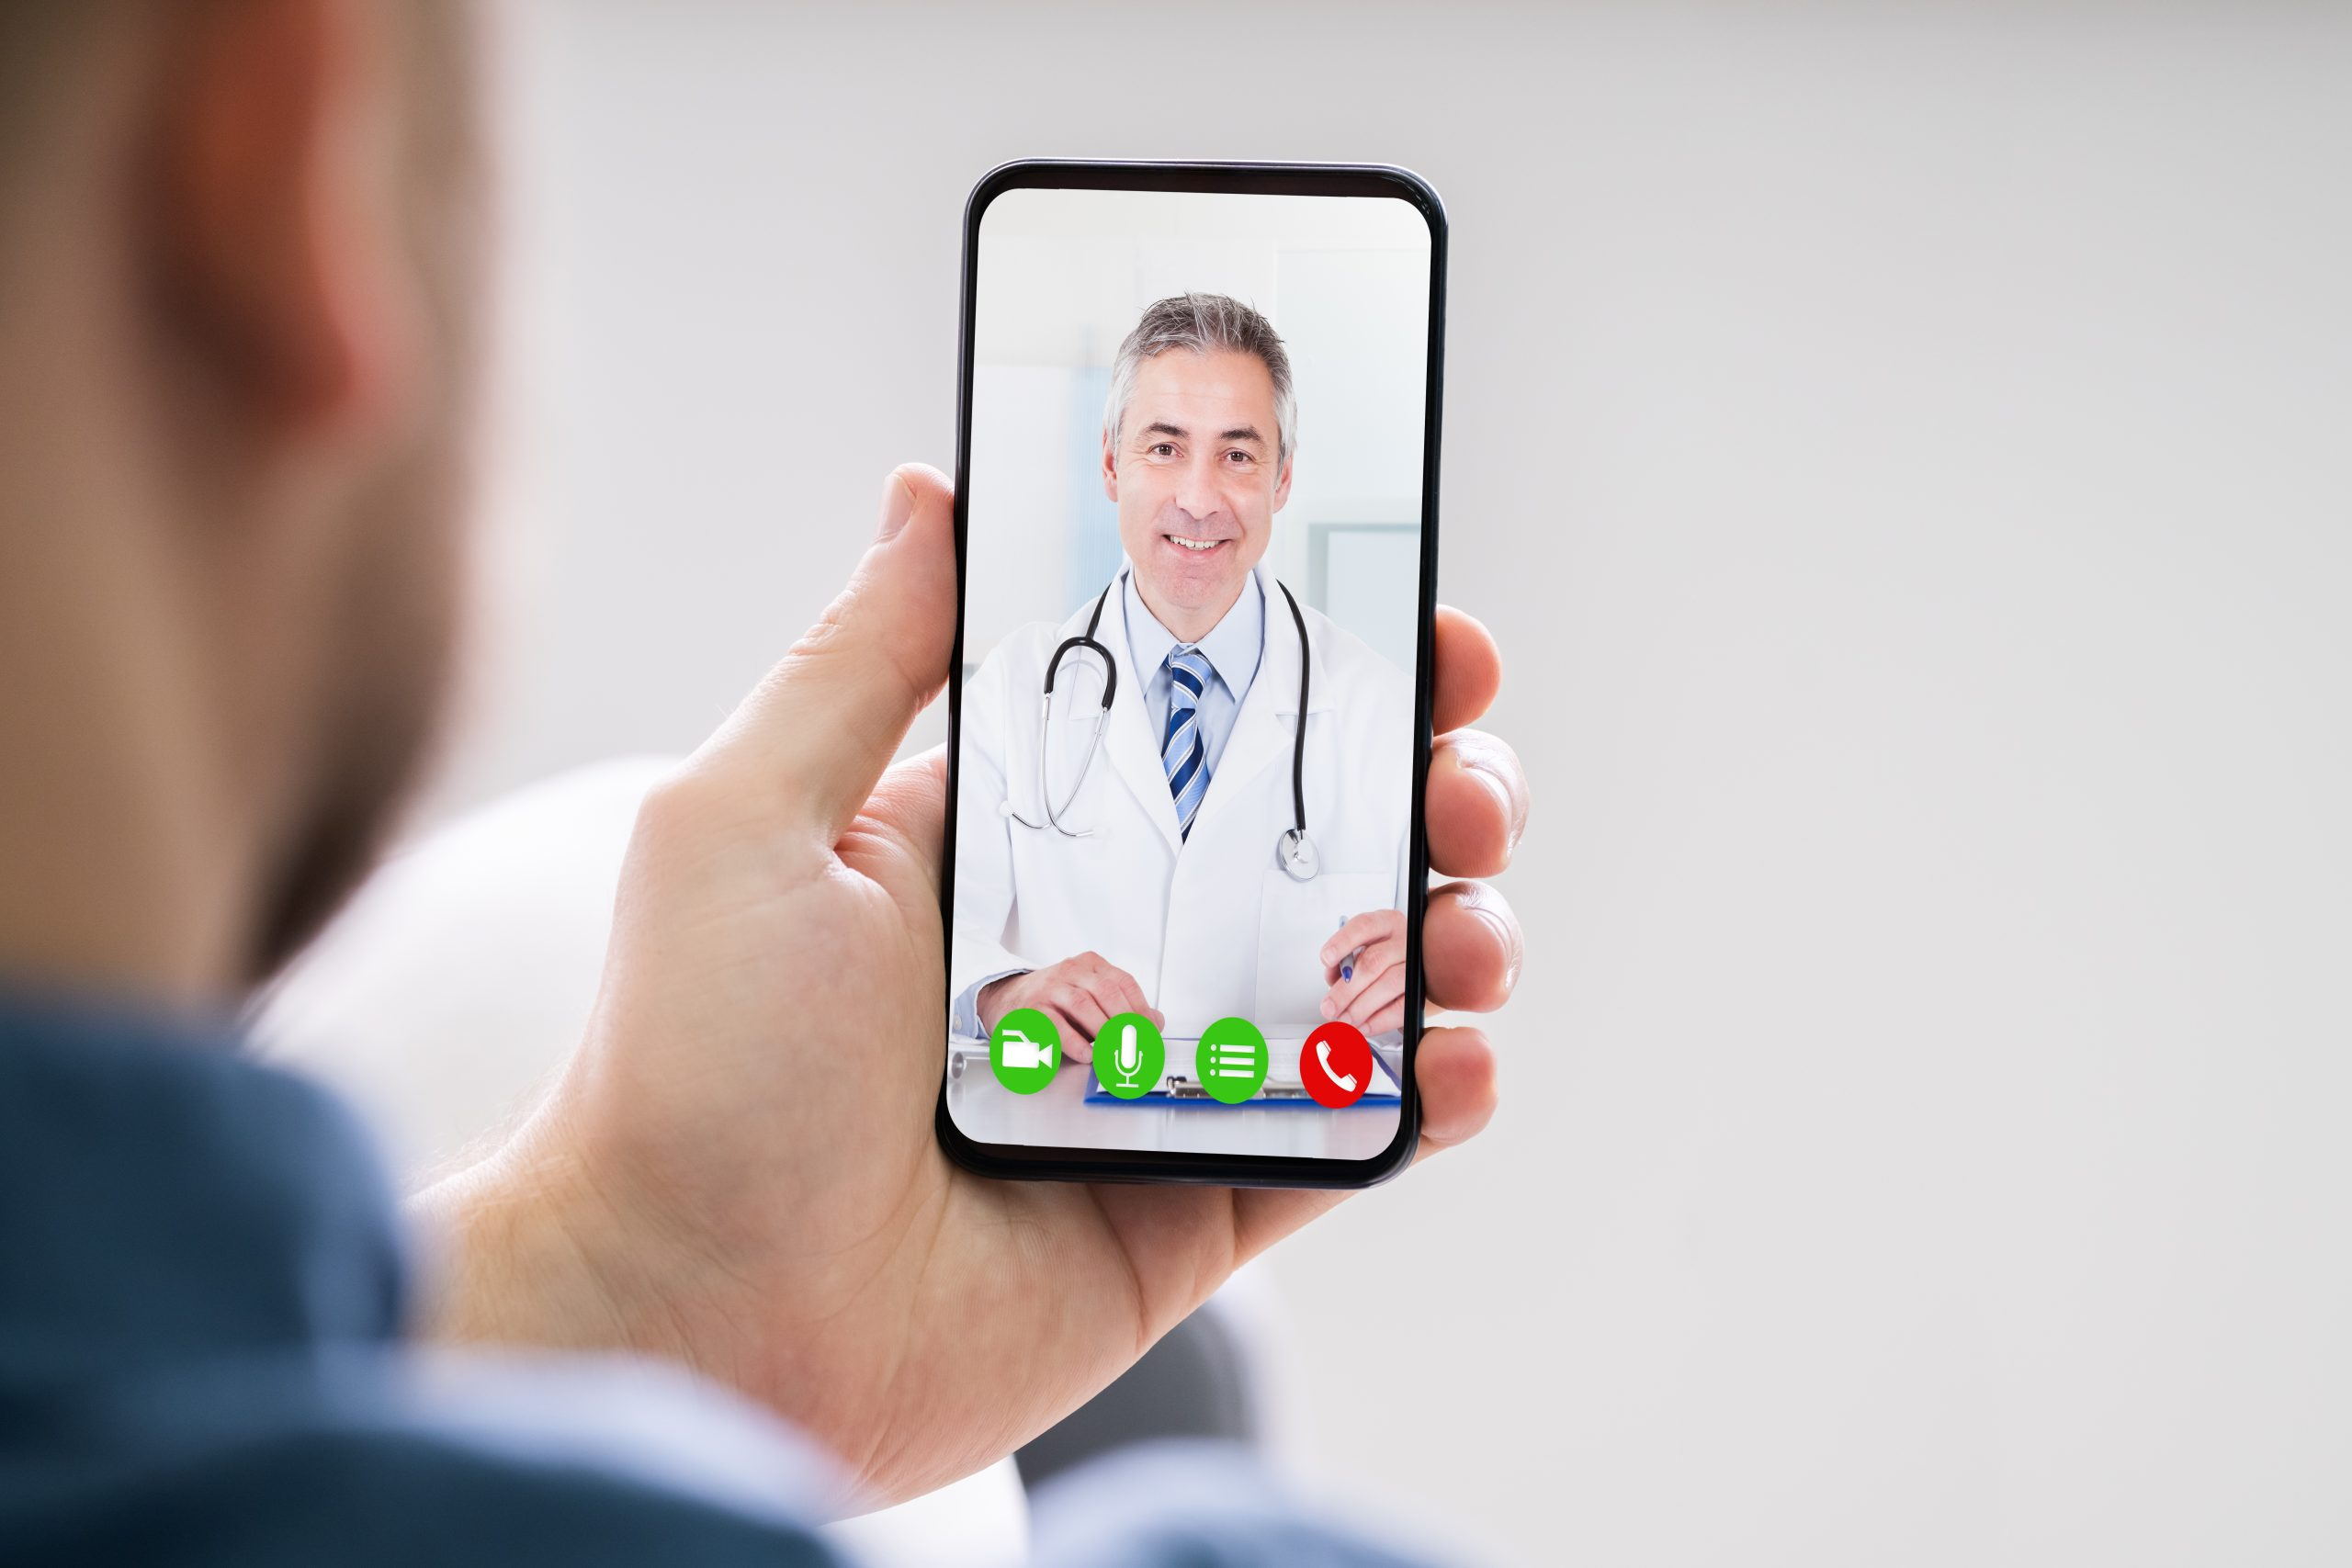 Male holding phone and talking to doctor virtually